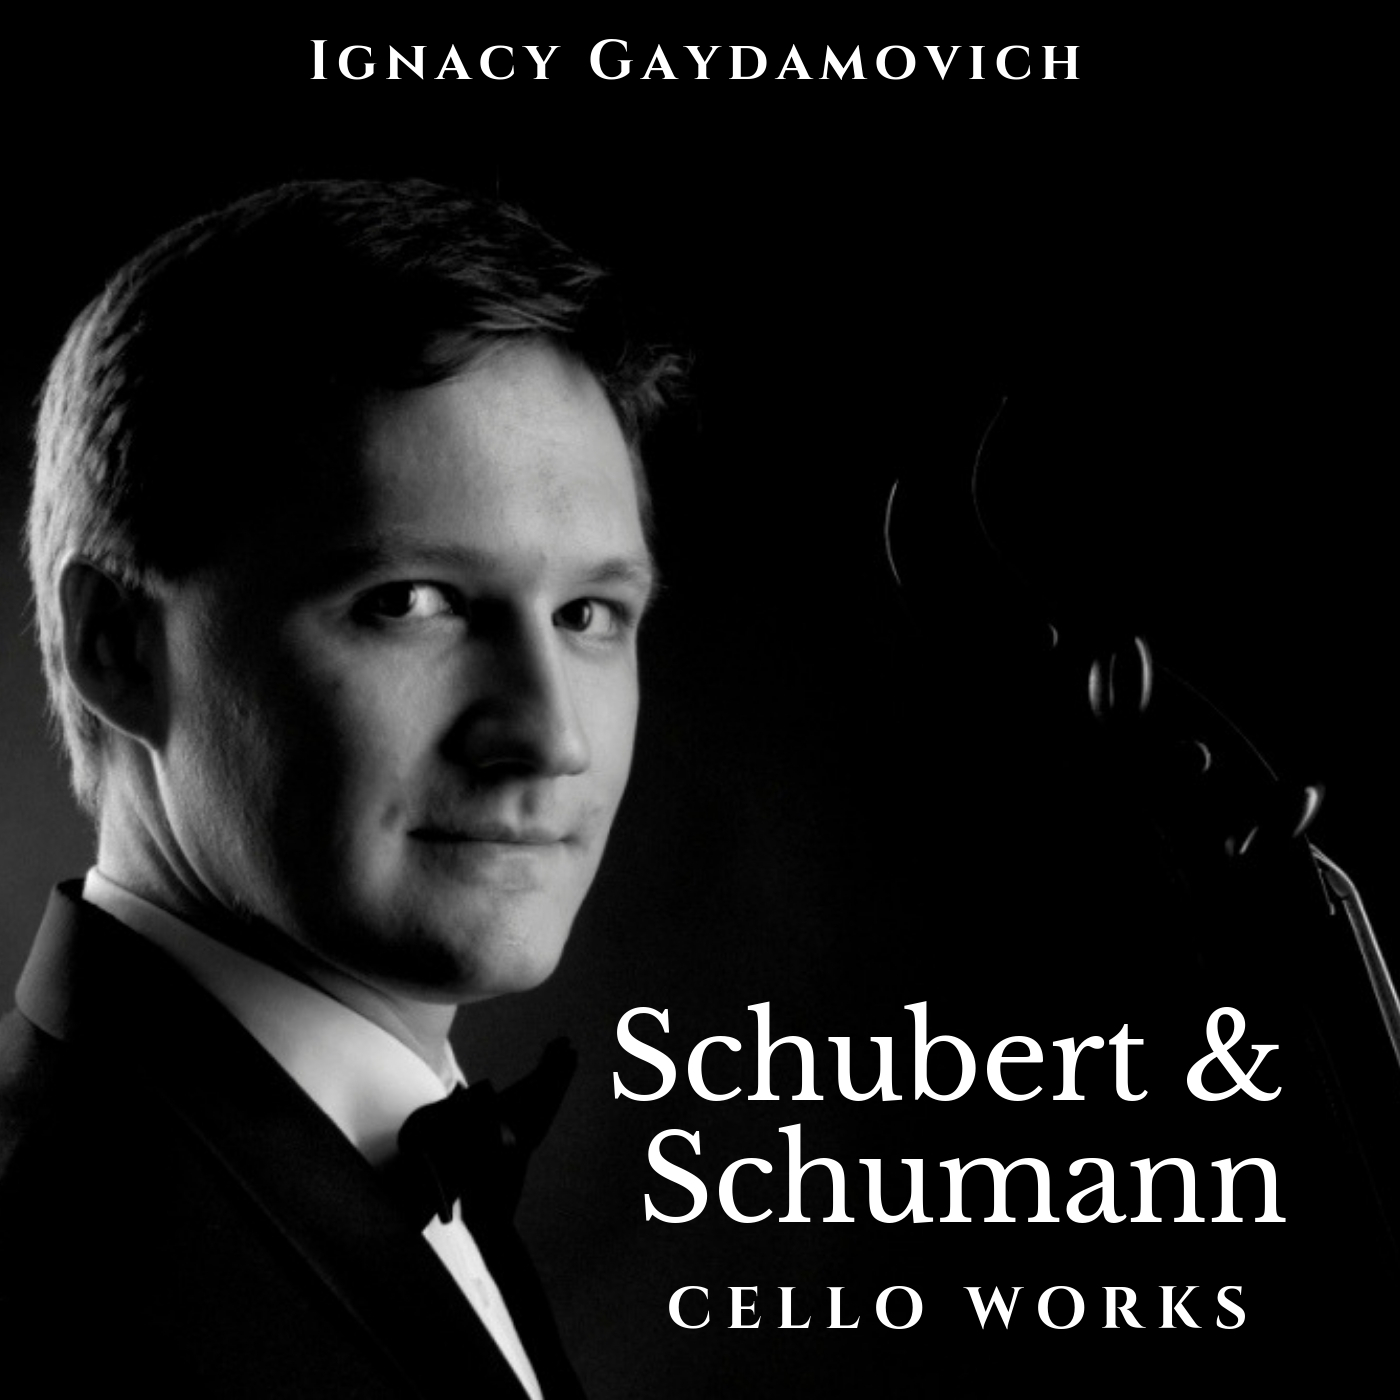 Schubert & Schumann: Cello Works